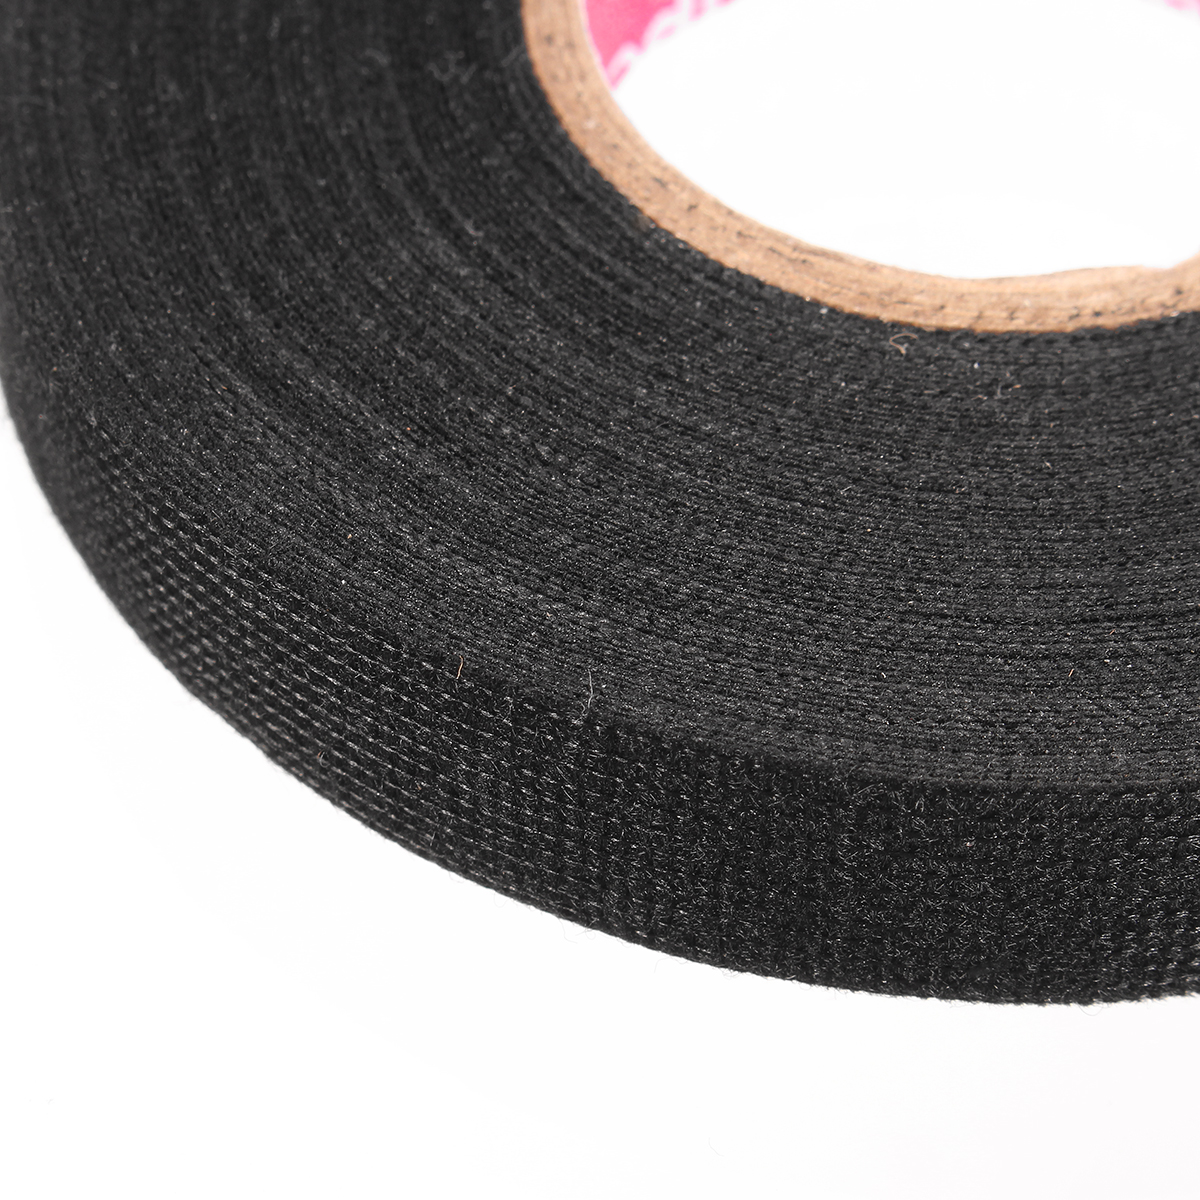 hight resolution of wire harness tape tools wiring diagram electrical cloth wire harness tape 15mm x 15m adhesive cloth